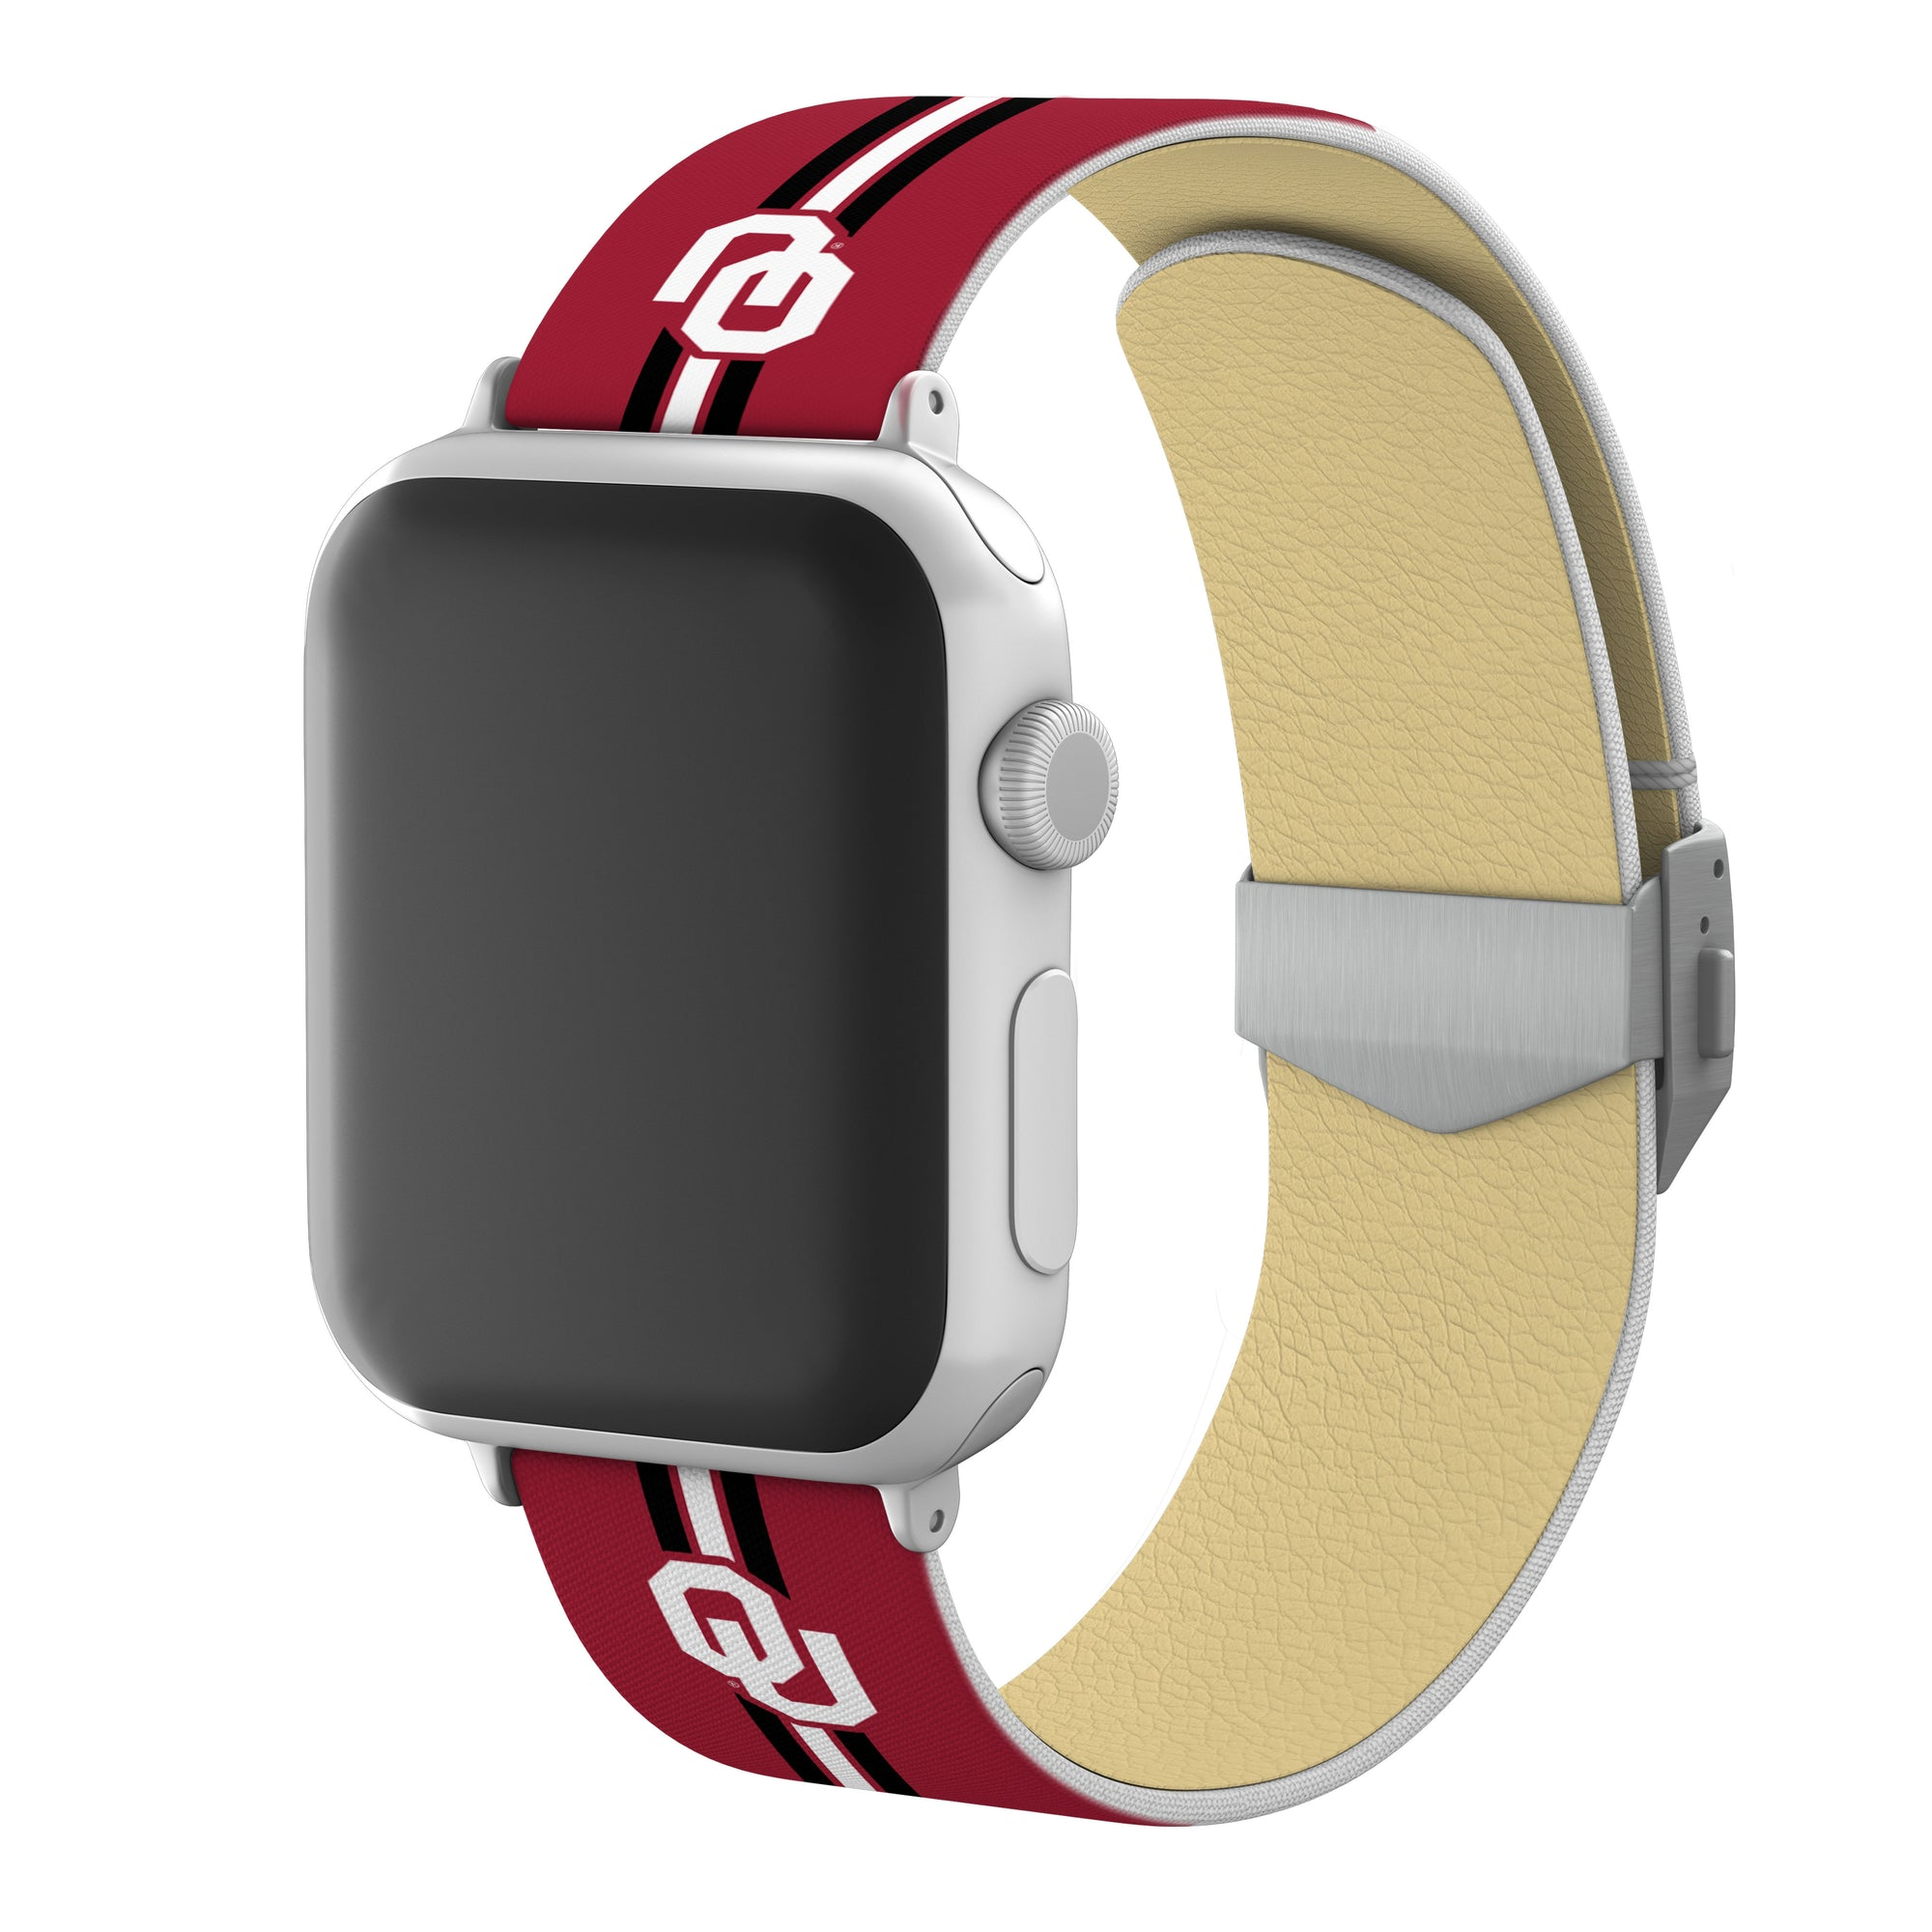 Oklahoma Sooners Full Print Watch Band With Engraved Buckle - AffinityBands